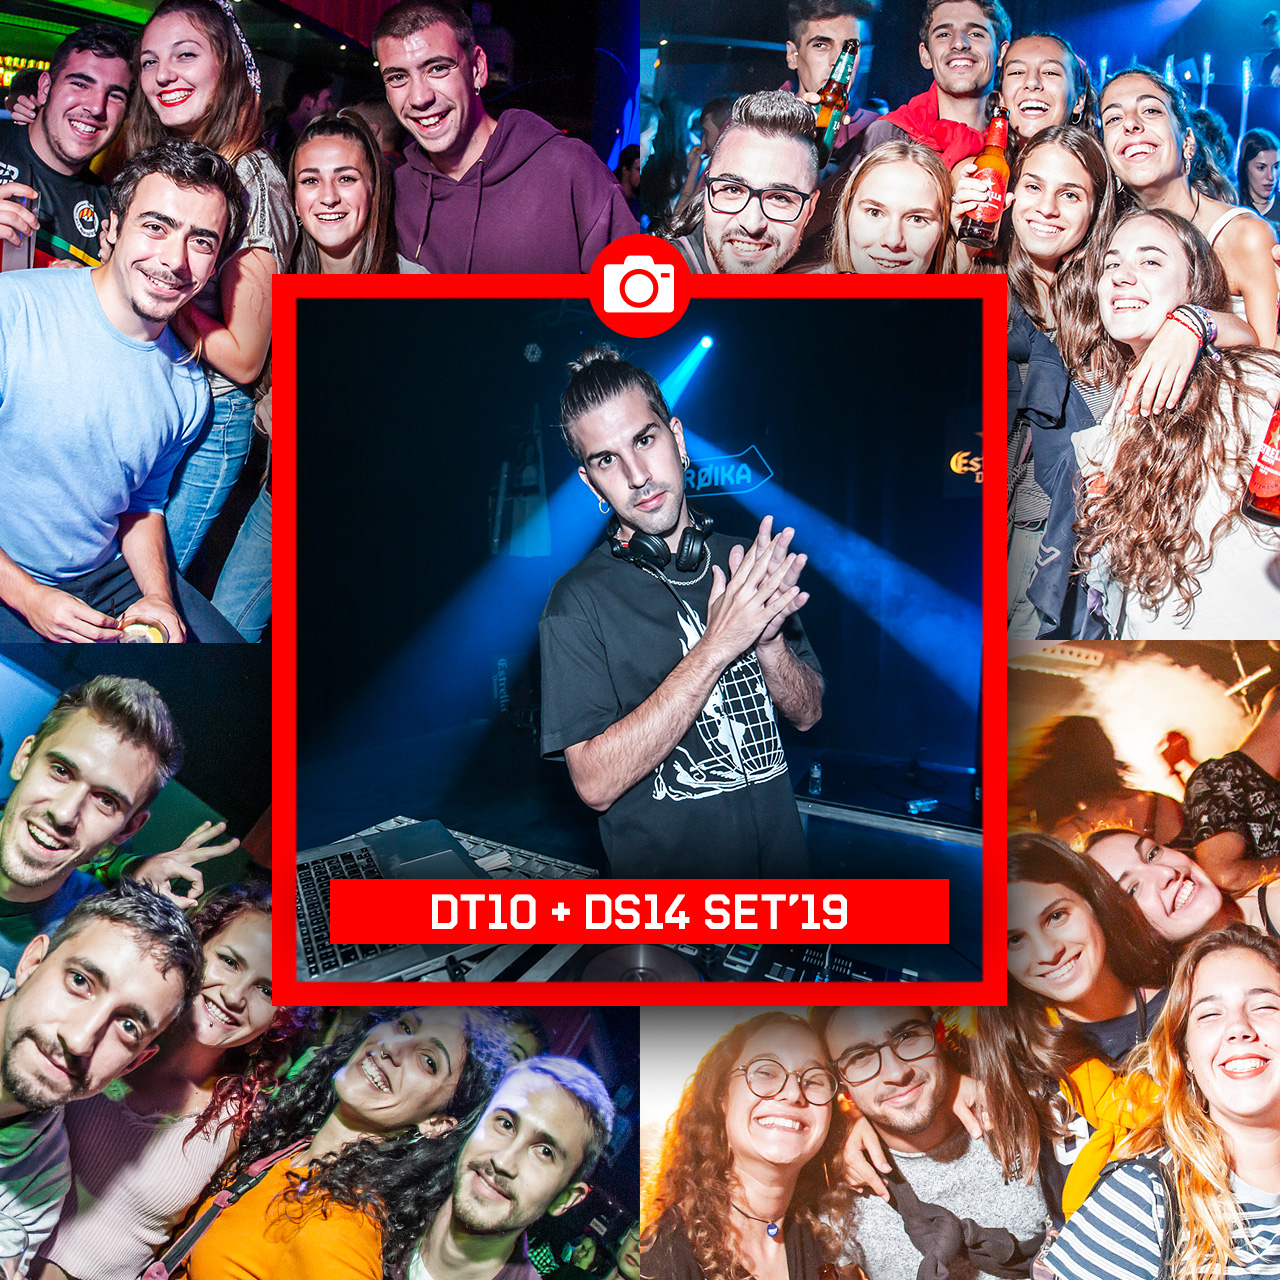 DT10 + DS14 SET'19 // LA LIADA + STROIKA SESSIONS